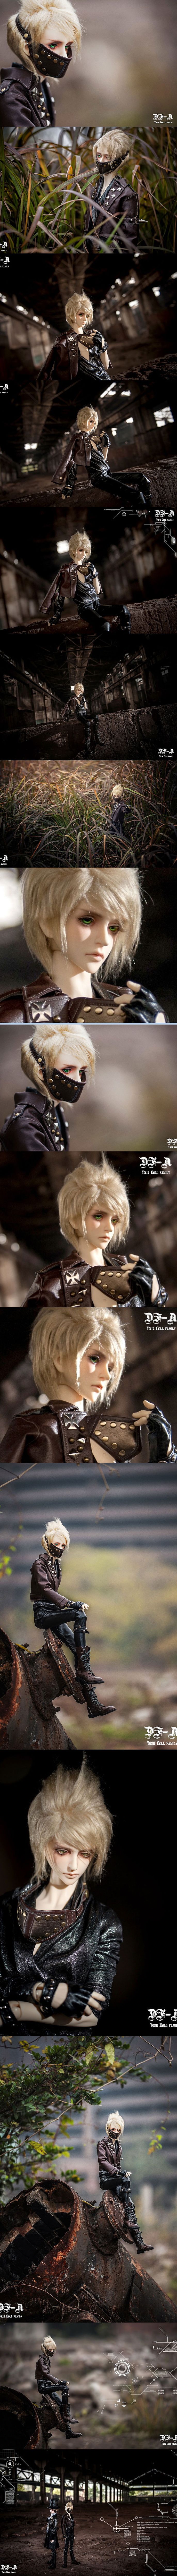 BJD Lauer 63cm Boy Ball-jointed doll